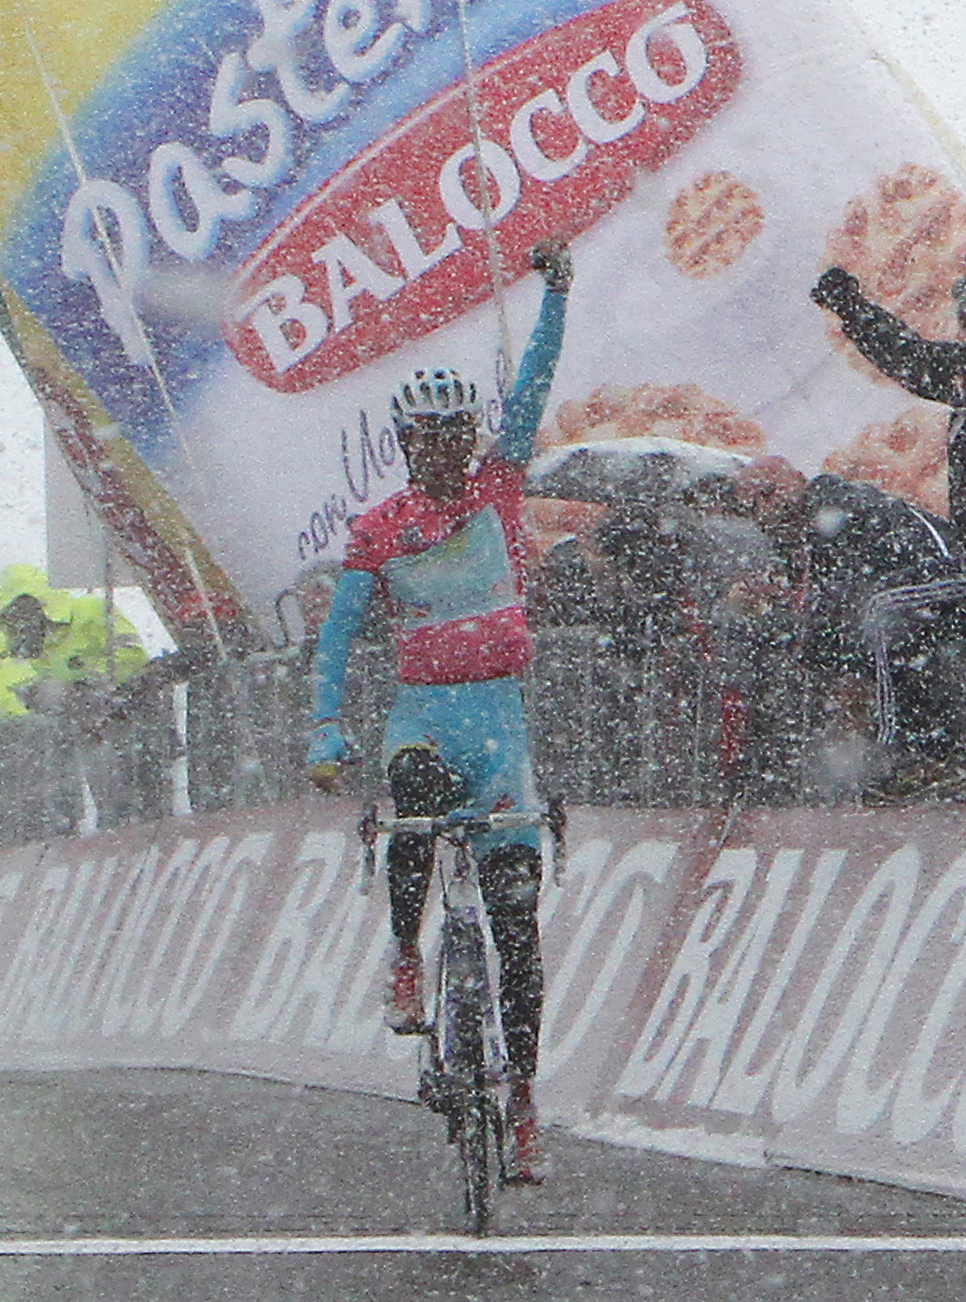 Rideing to victory in snowy conditions up Tre Cime di Lavaredo cementing his hold on the maglia rosa.